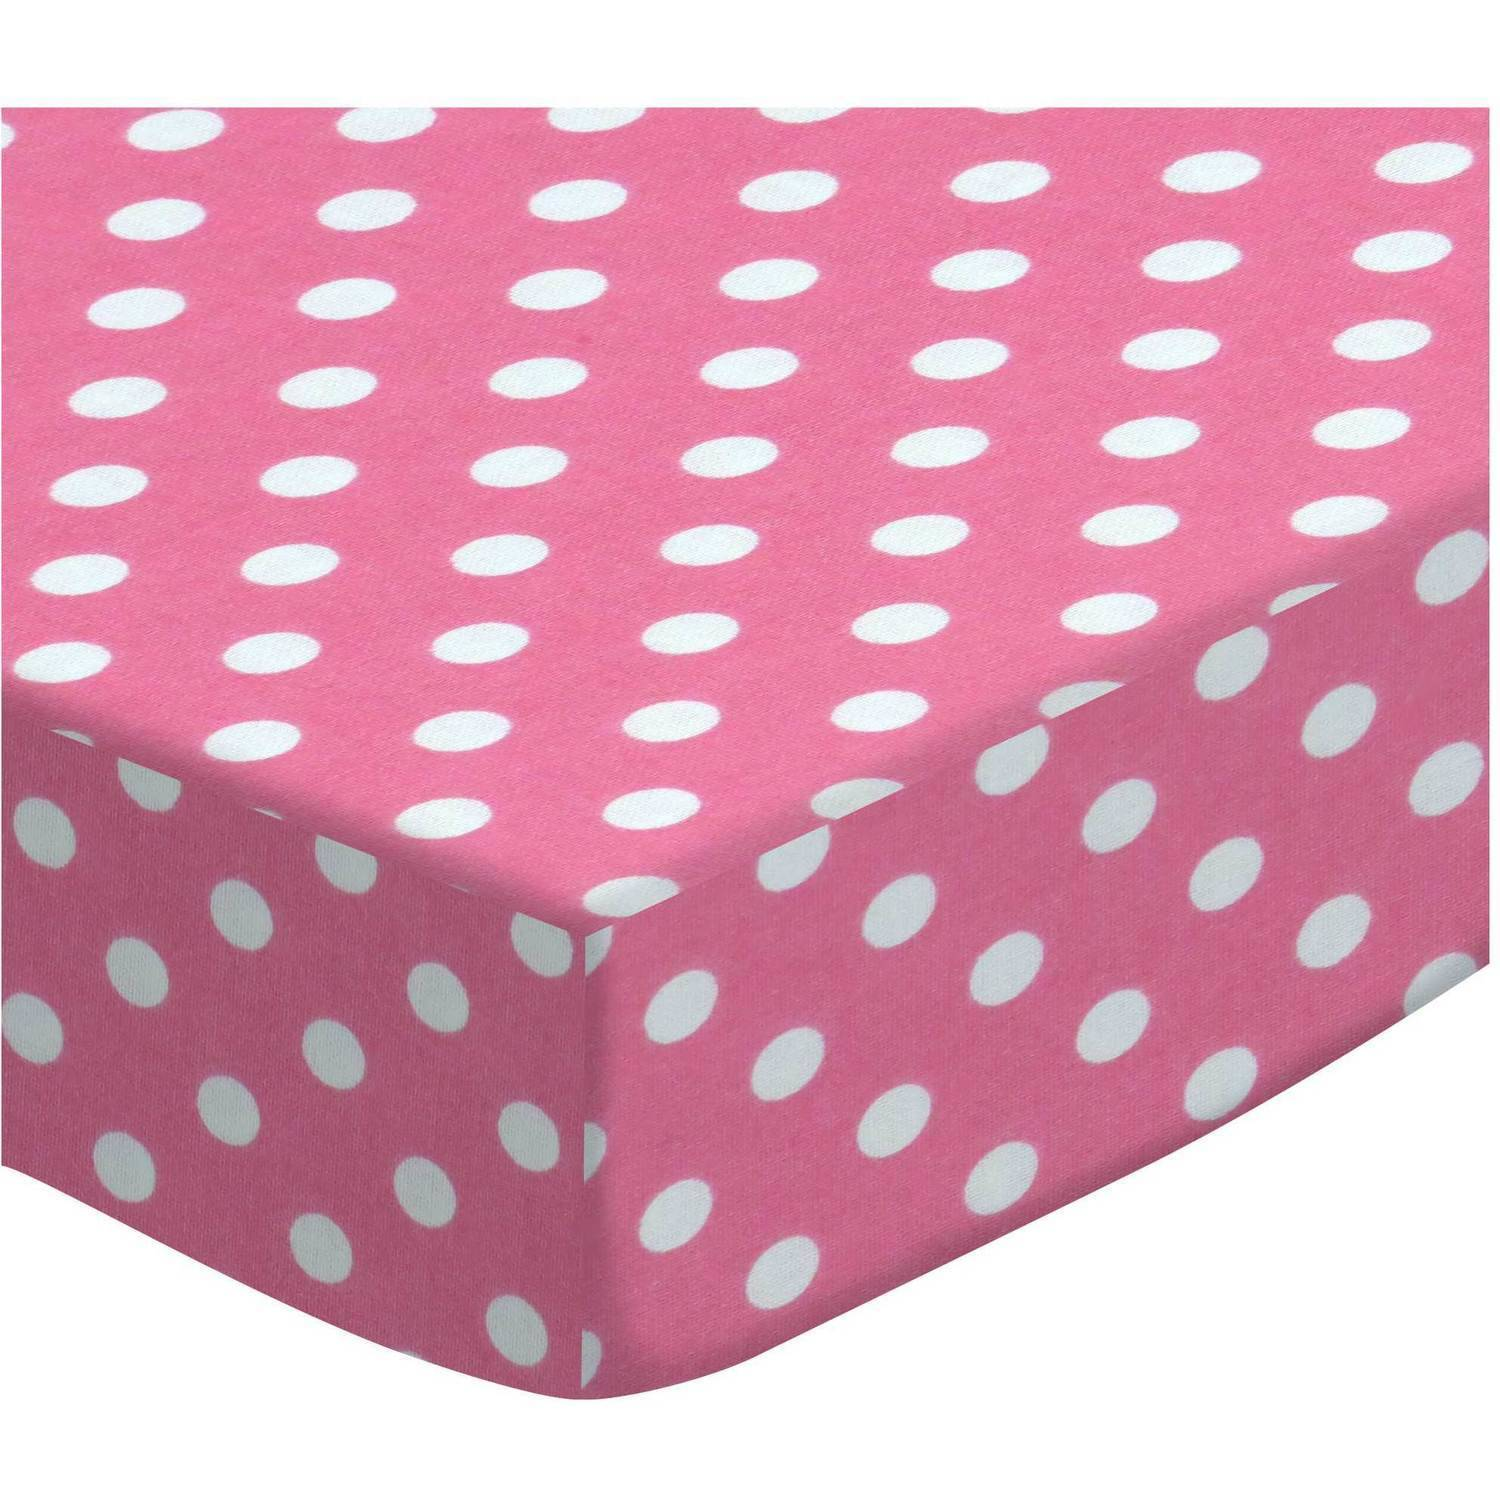 SheetWorld Fitted Crib / Toddler Sheet - Primary Polka Dots Pink Woven